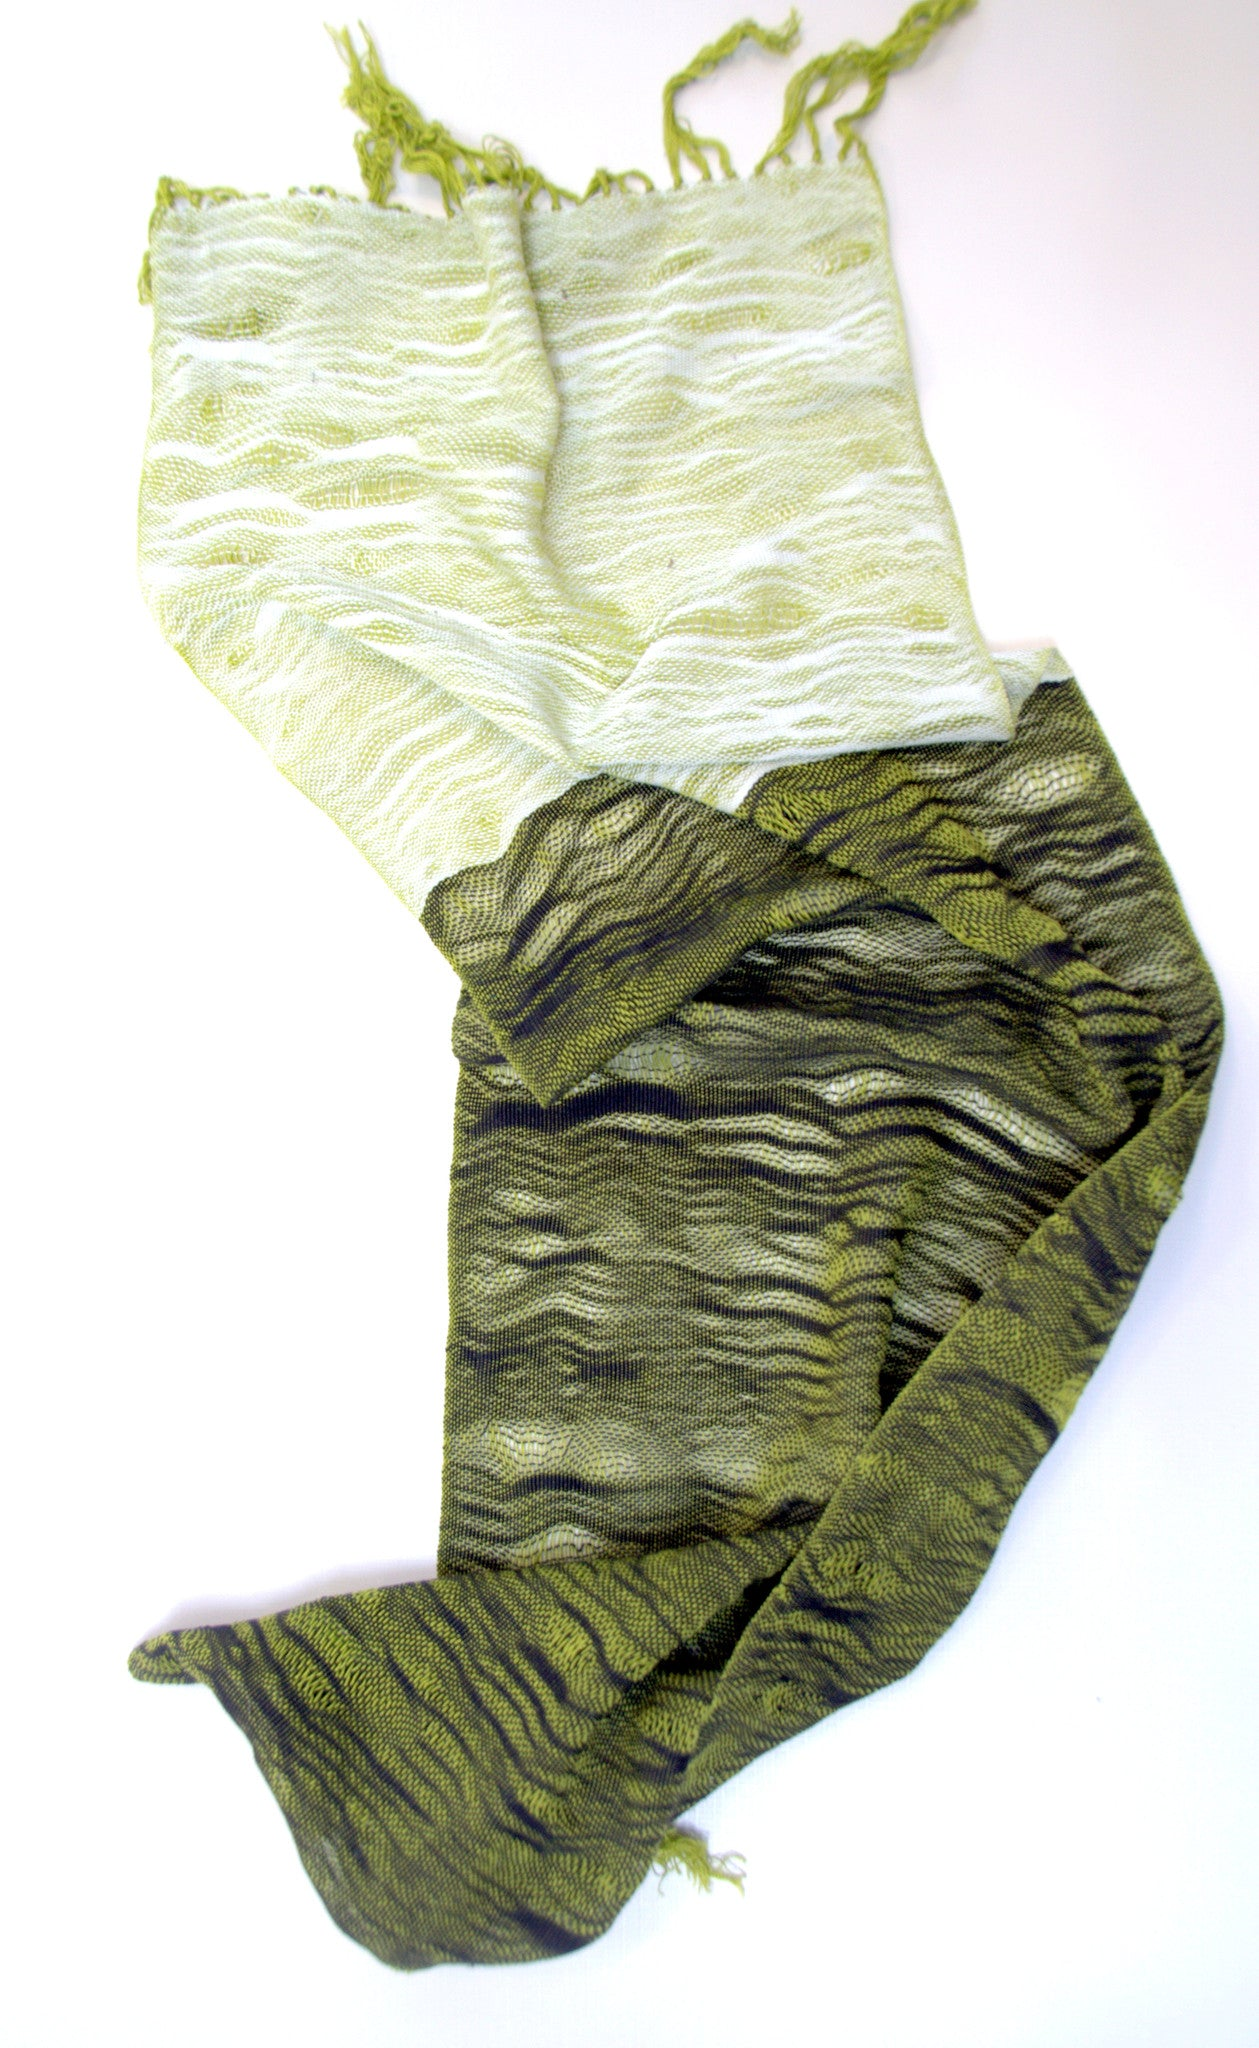 Sunday hand woven cotton scarf : chartreuse, white,  and black